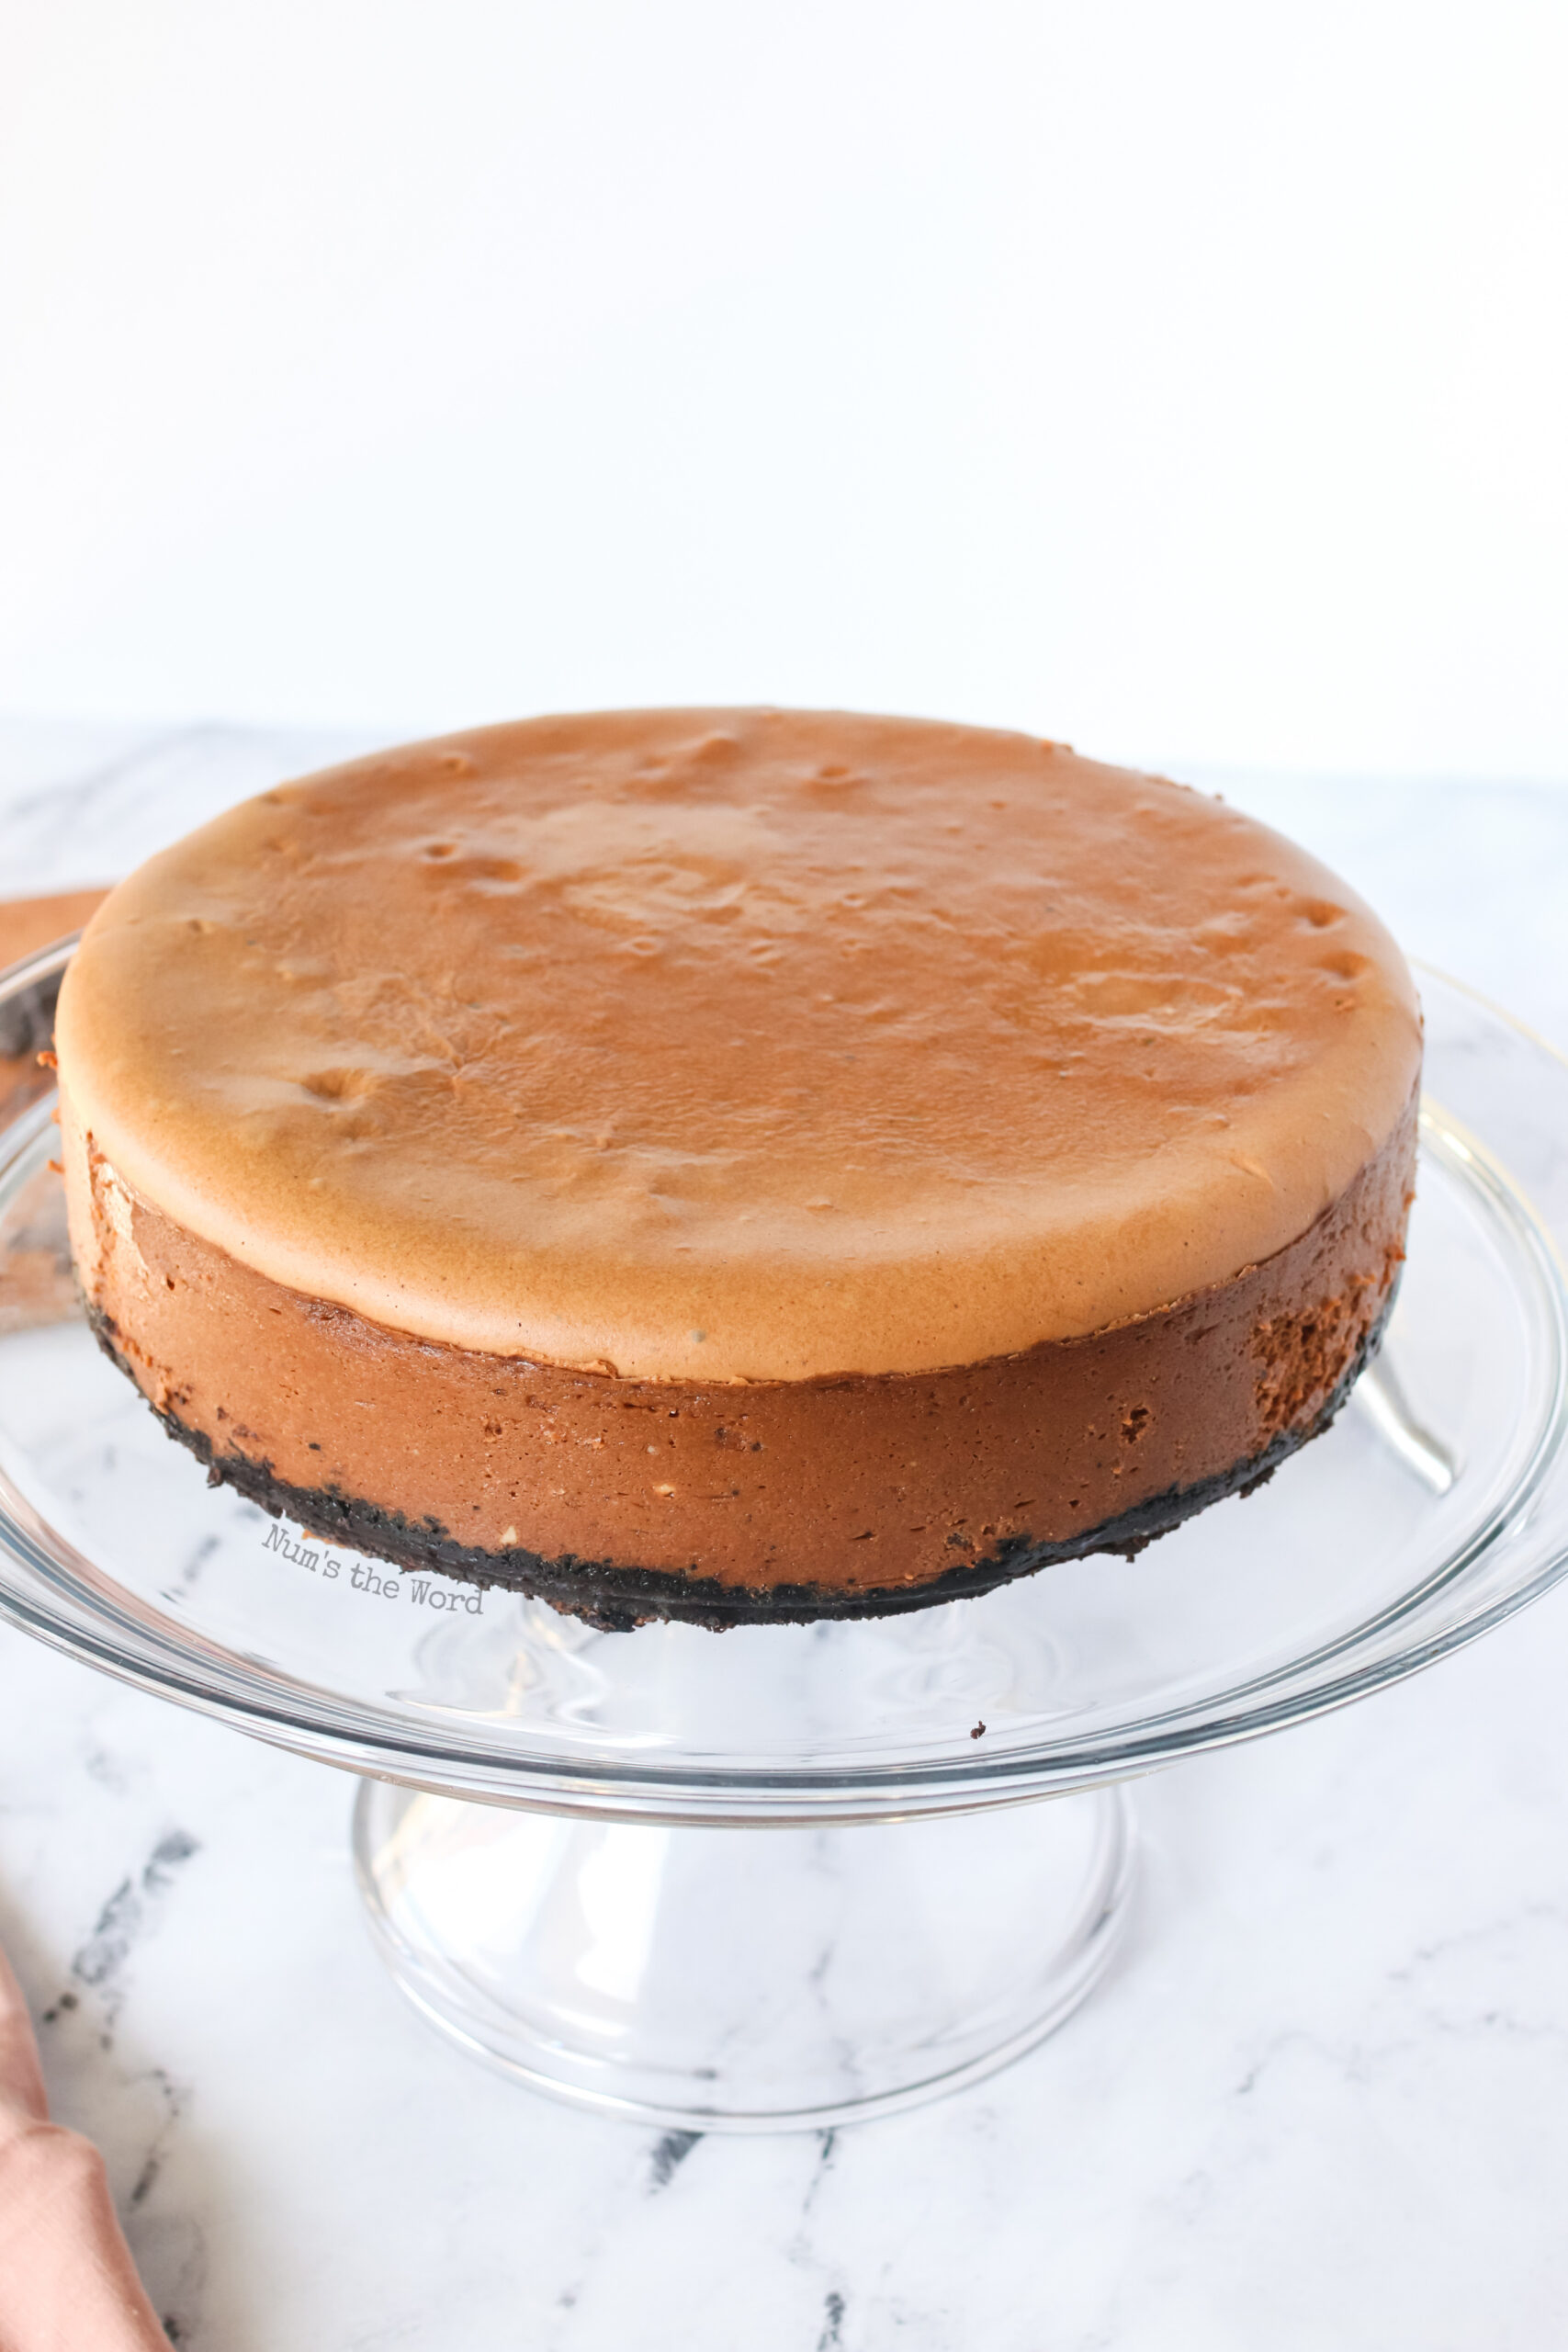 baked and cooled cheesecake on a serving platter.